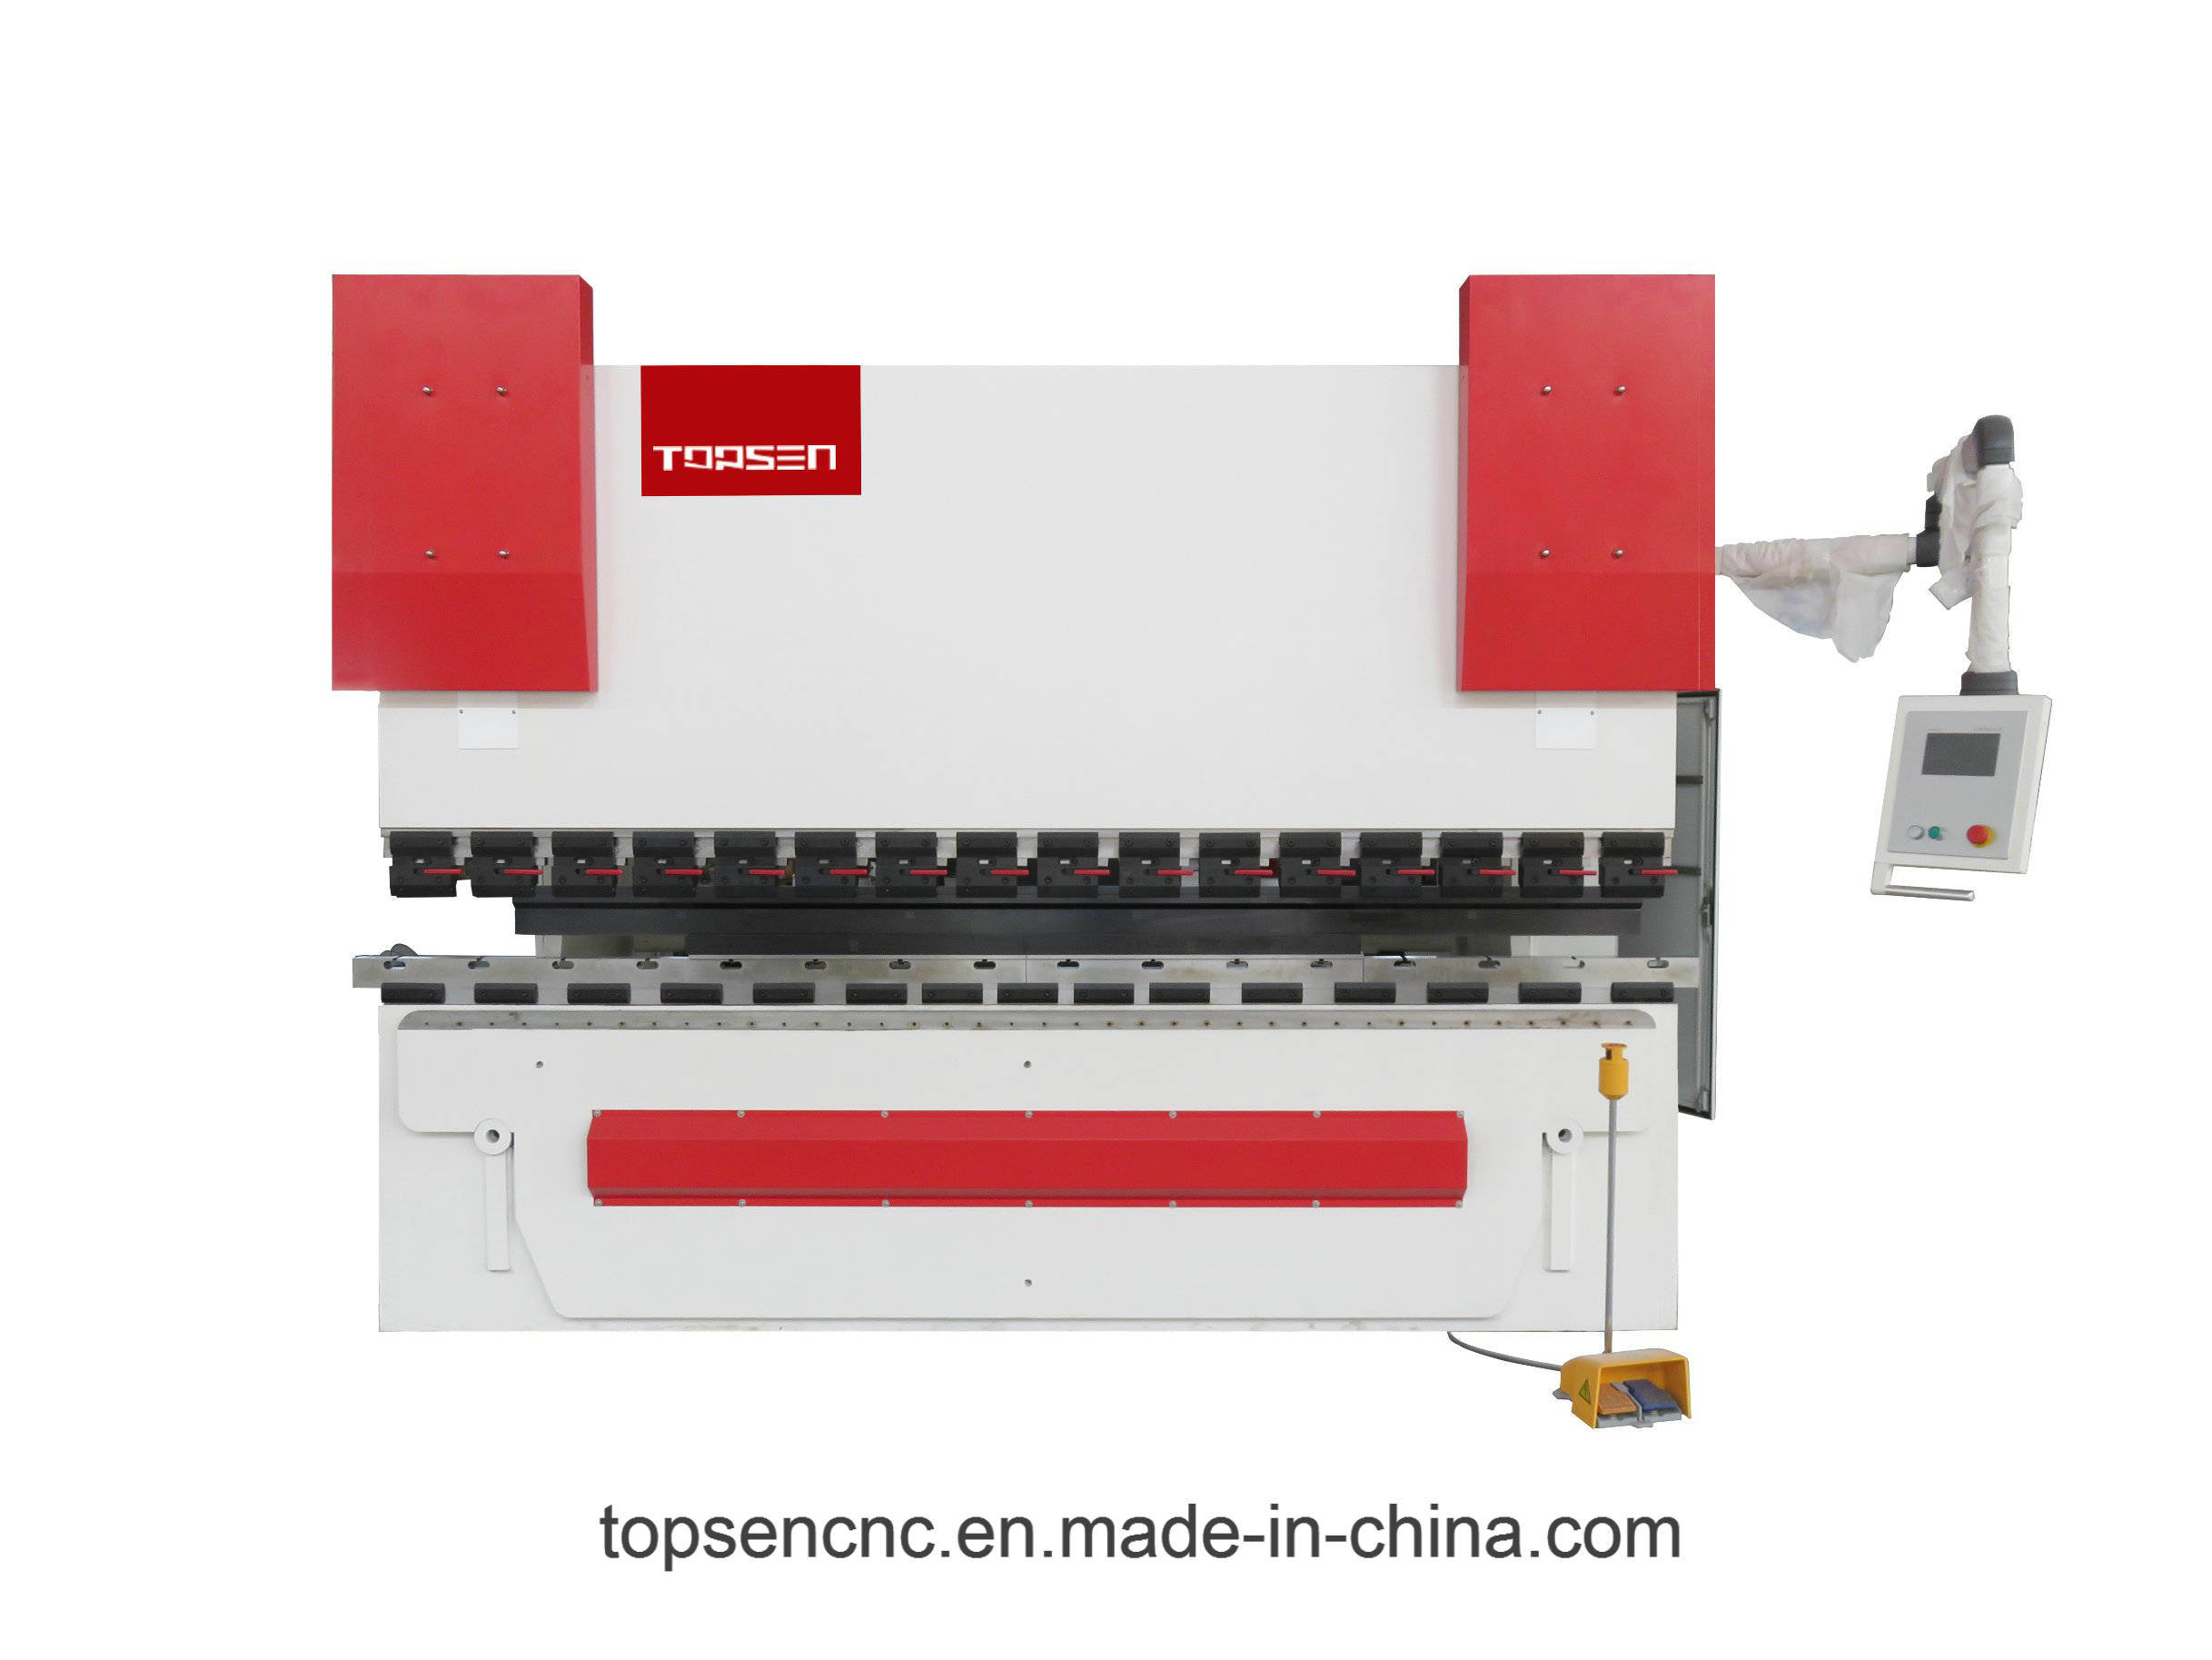 3+1 Axis Cybelec CT8 Touch Screen Press Brake